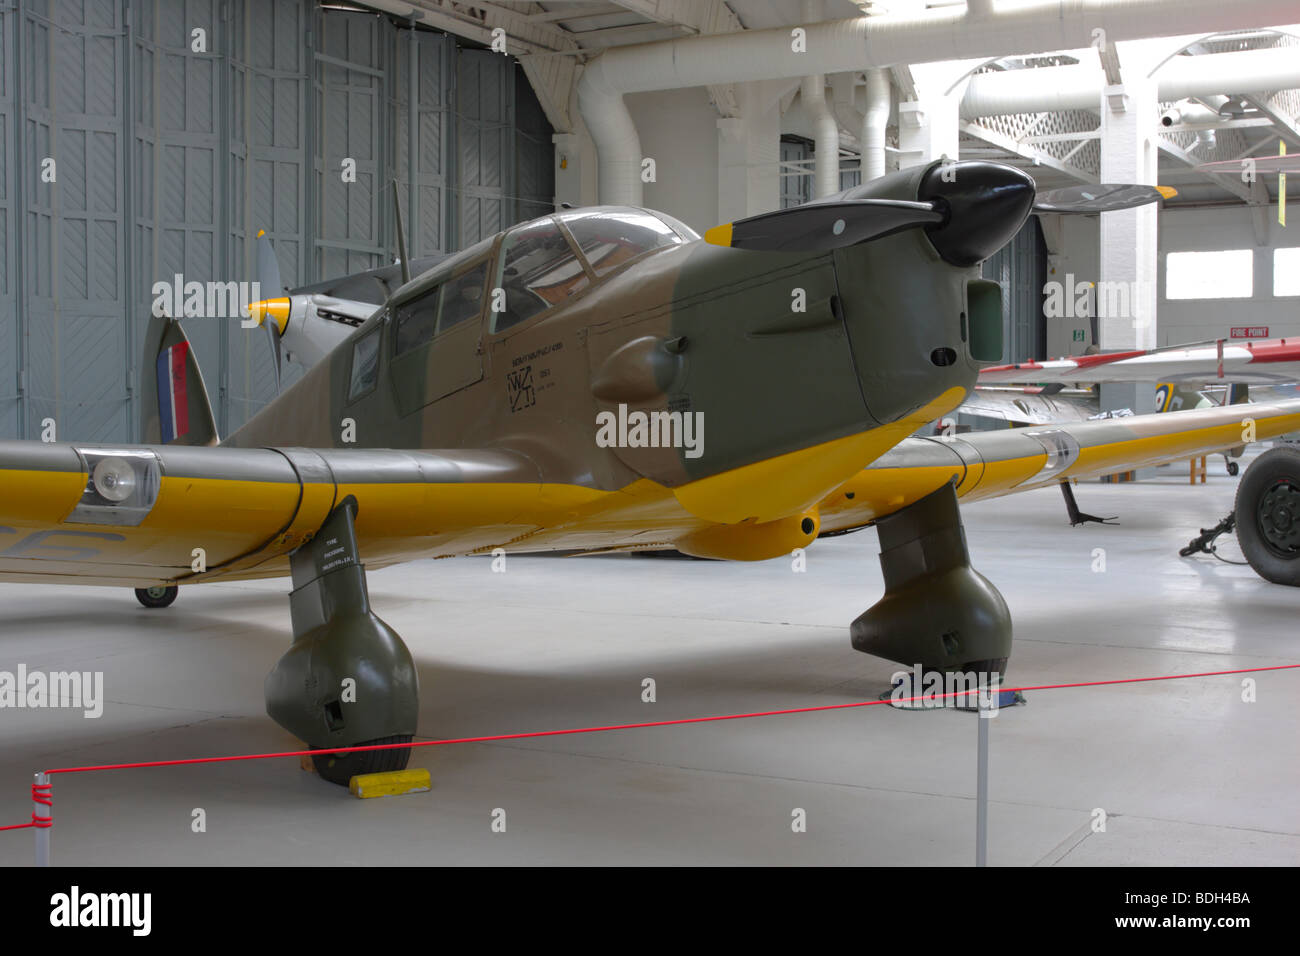 In it`s upper camouflage and yellow under belly livery,this example of an Percival Proctor III aircraft at IWM Duxford. - Stock Image